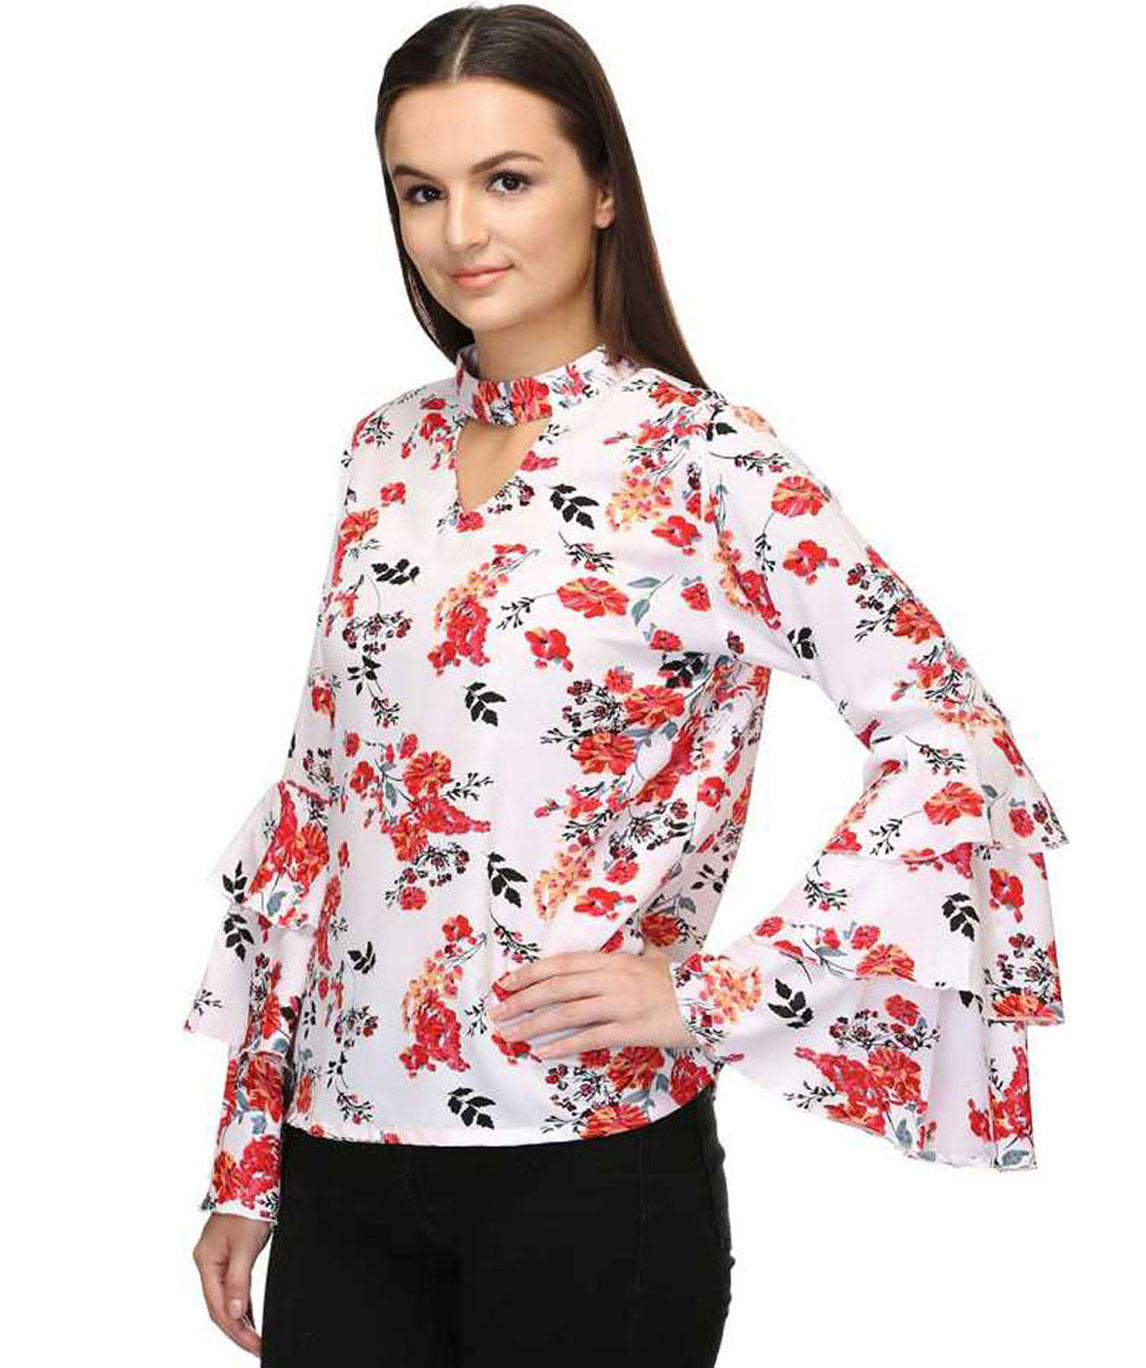 CASUAL LAYERED SLEEVE PRINTED WOMEN WHITE, RED TOP